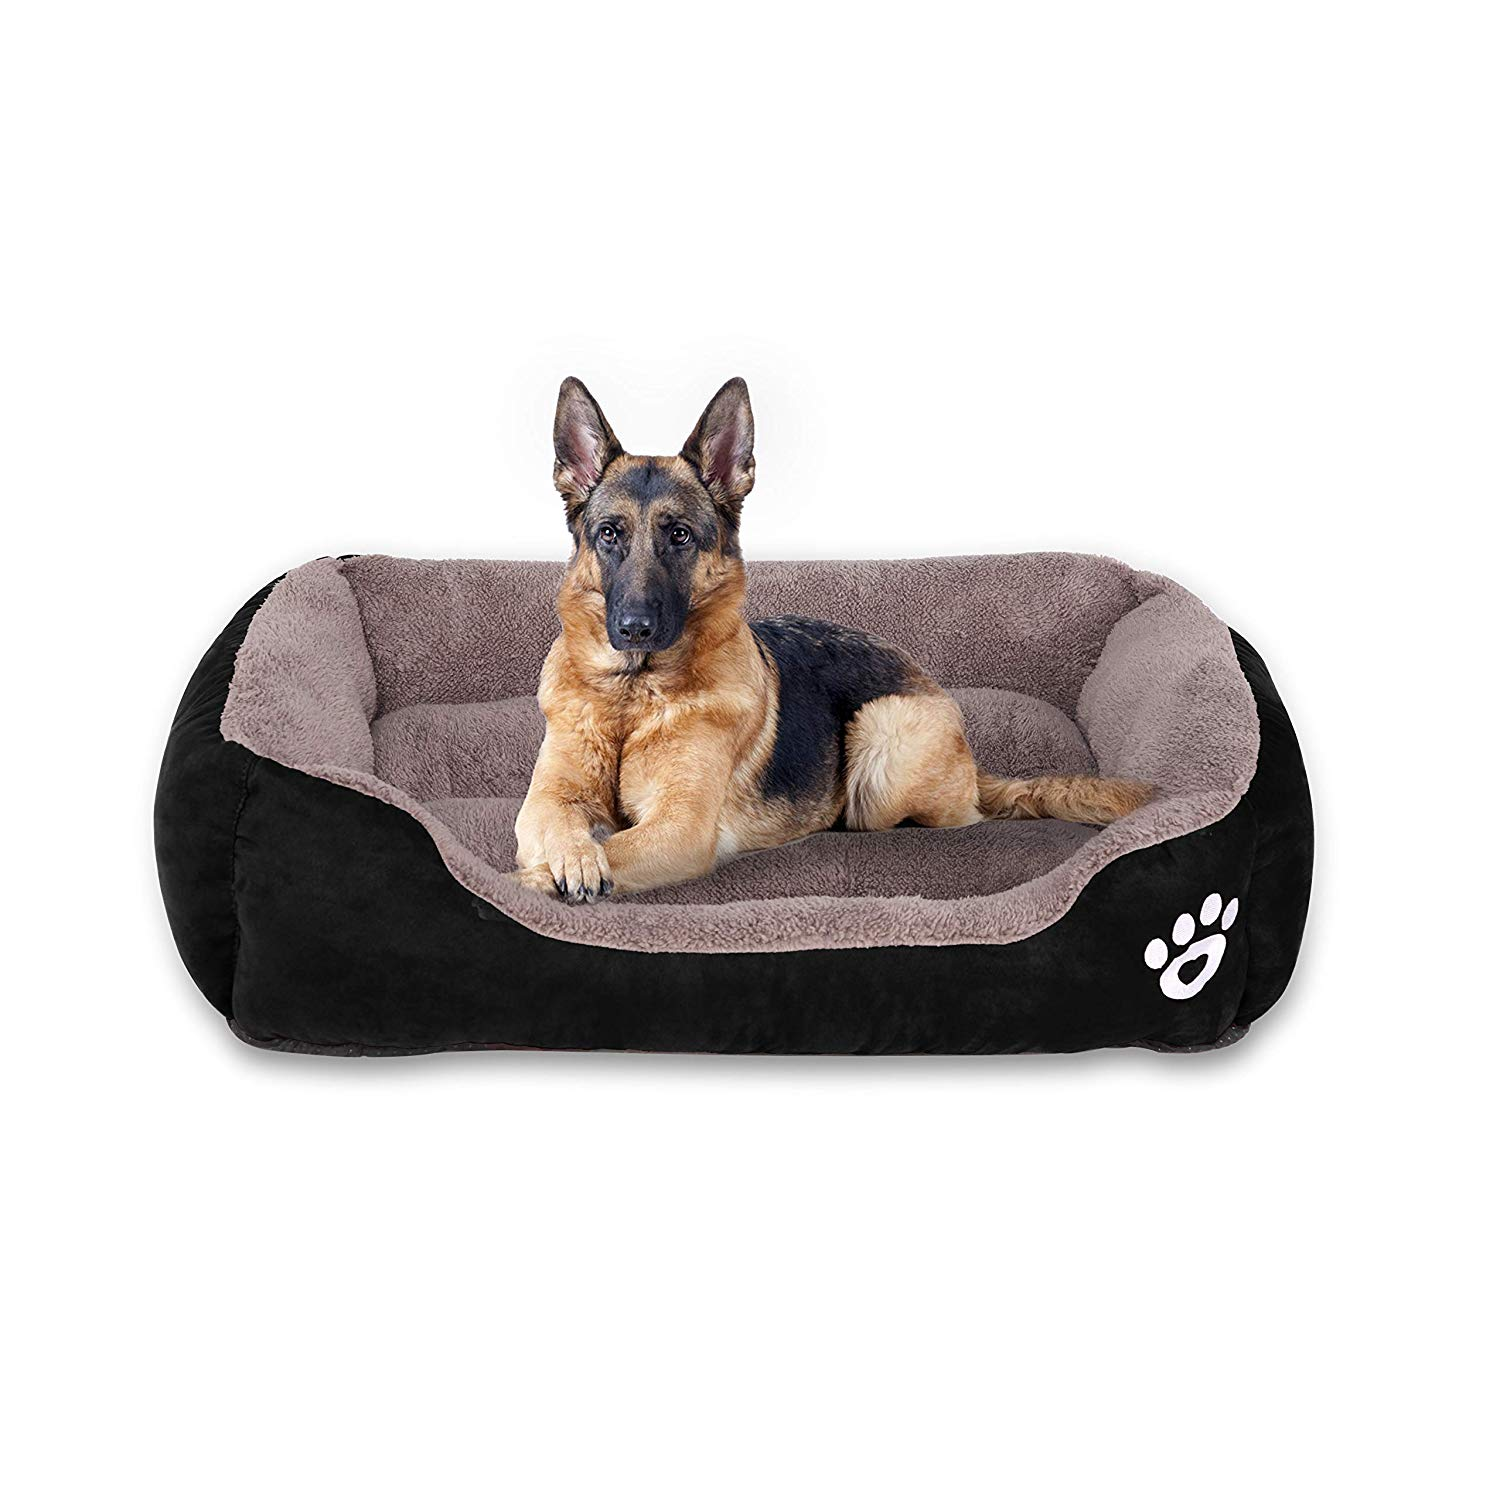 Utotol Warming Dog Beds